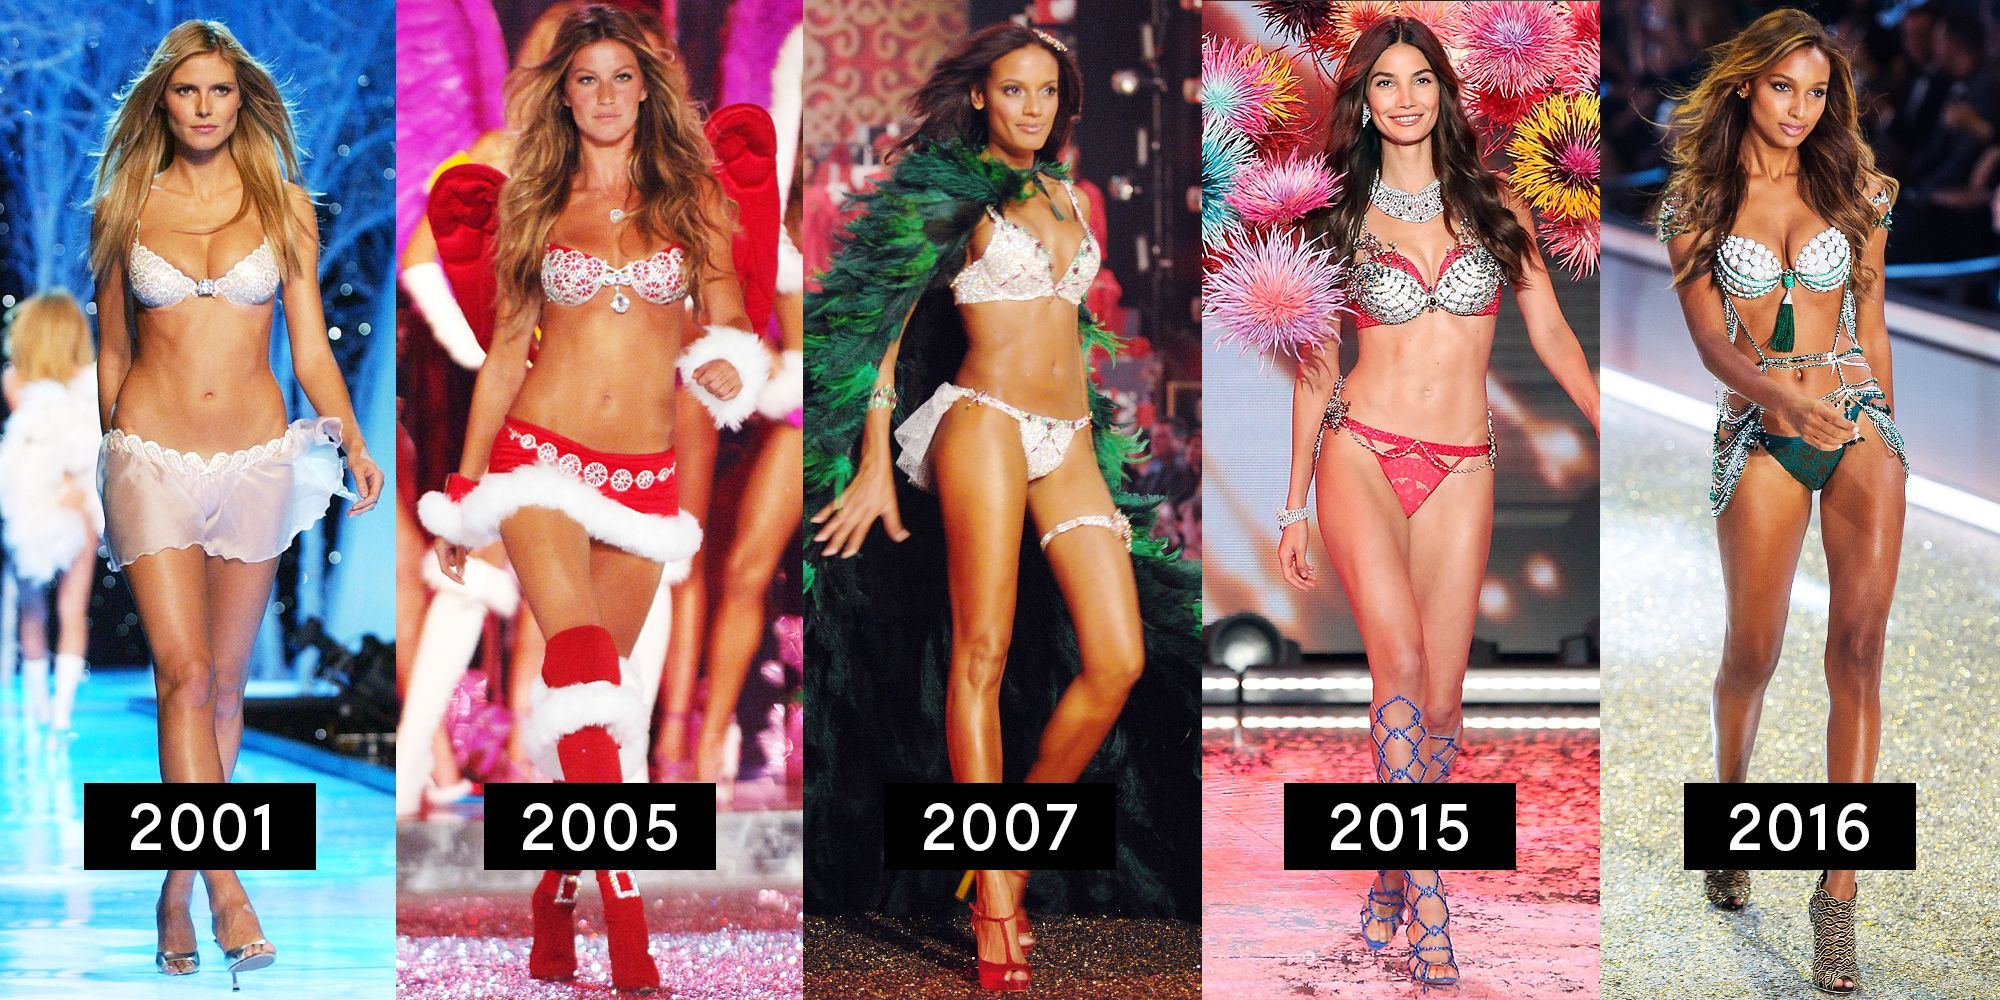 cf448a0744a9b $137 Million in Bras: The Complete Evolution of the Victoria's ...